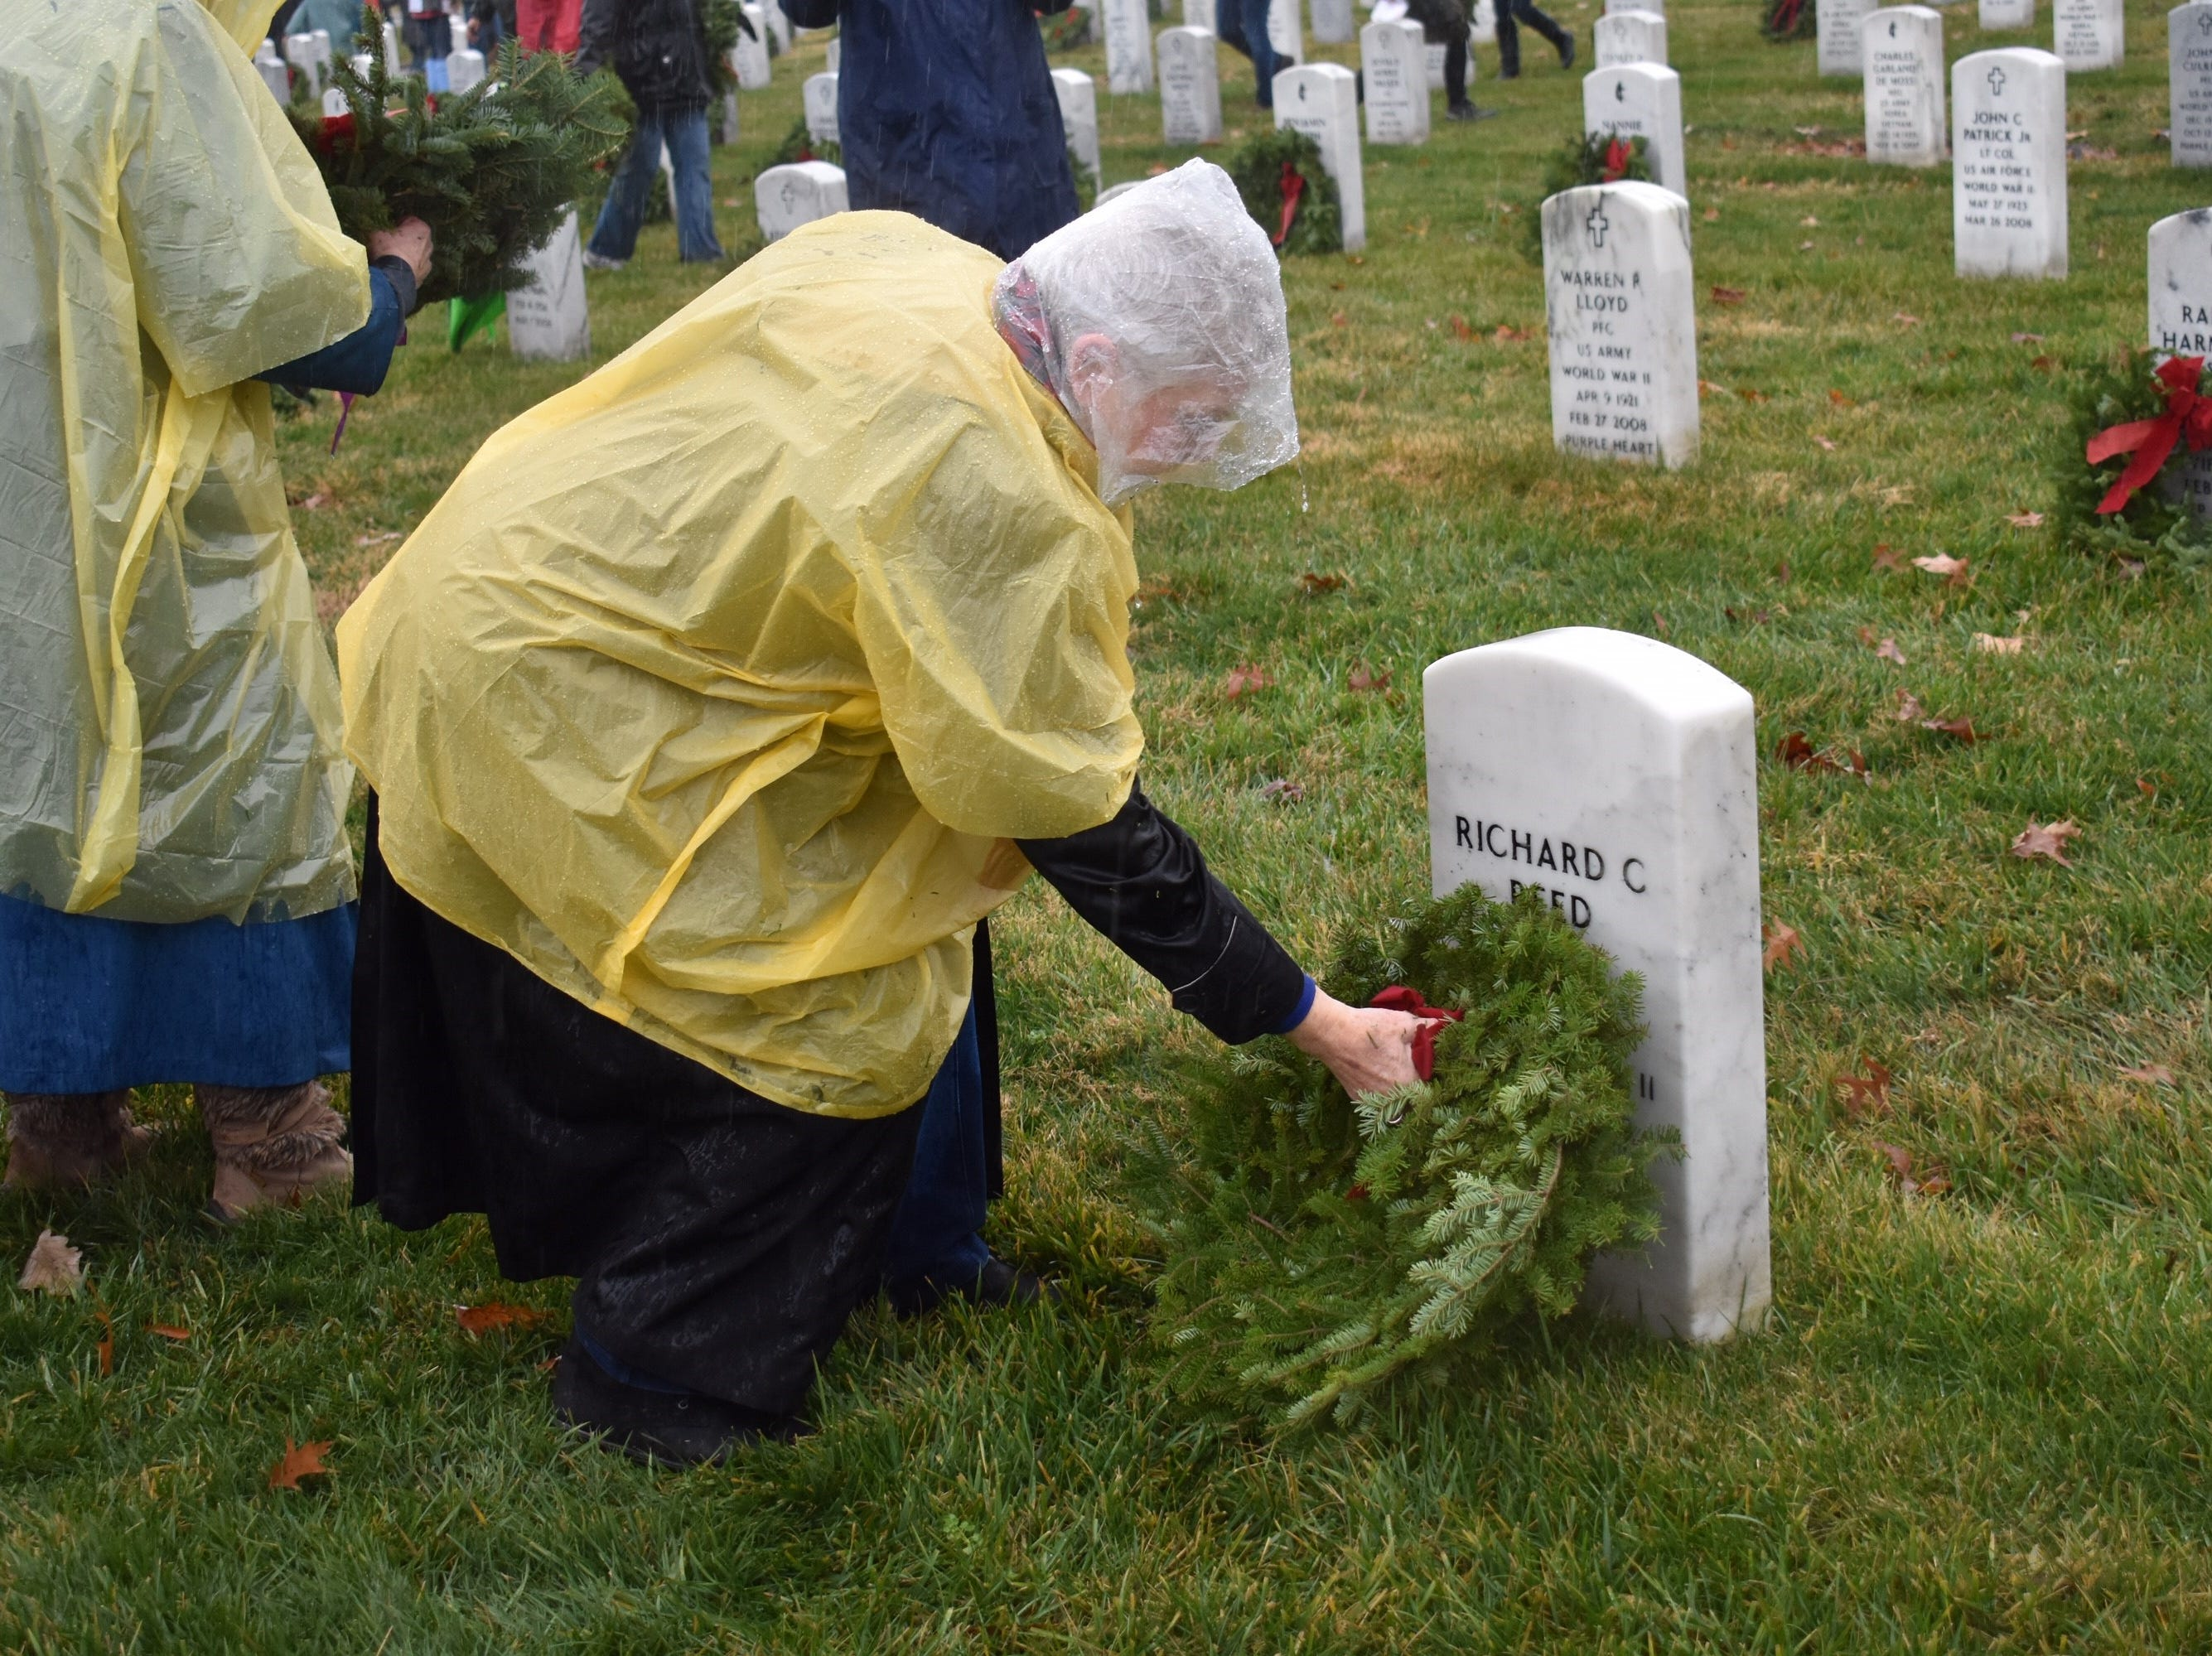 Celene Post, of Chandler, and national program chair for the General Federation of Women's Clubs, an international service organization, places a wreath on a grave at Arlington National Cemetery in Virginia on Dec. 15, 2018.